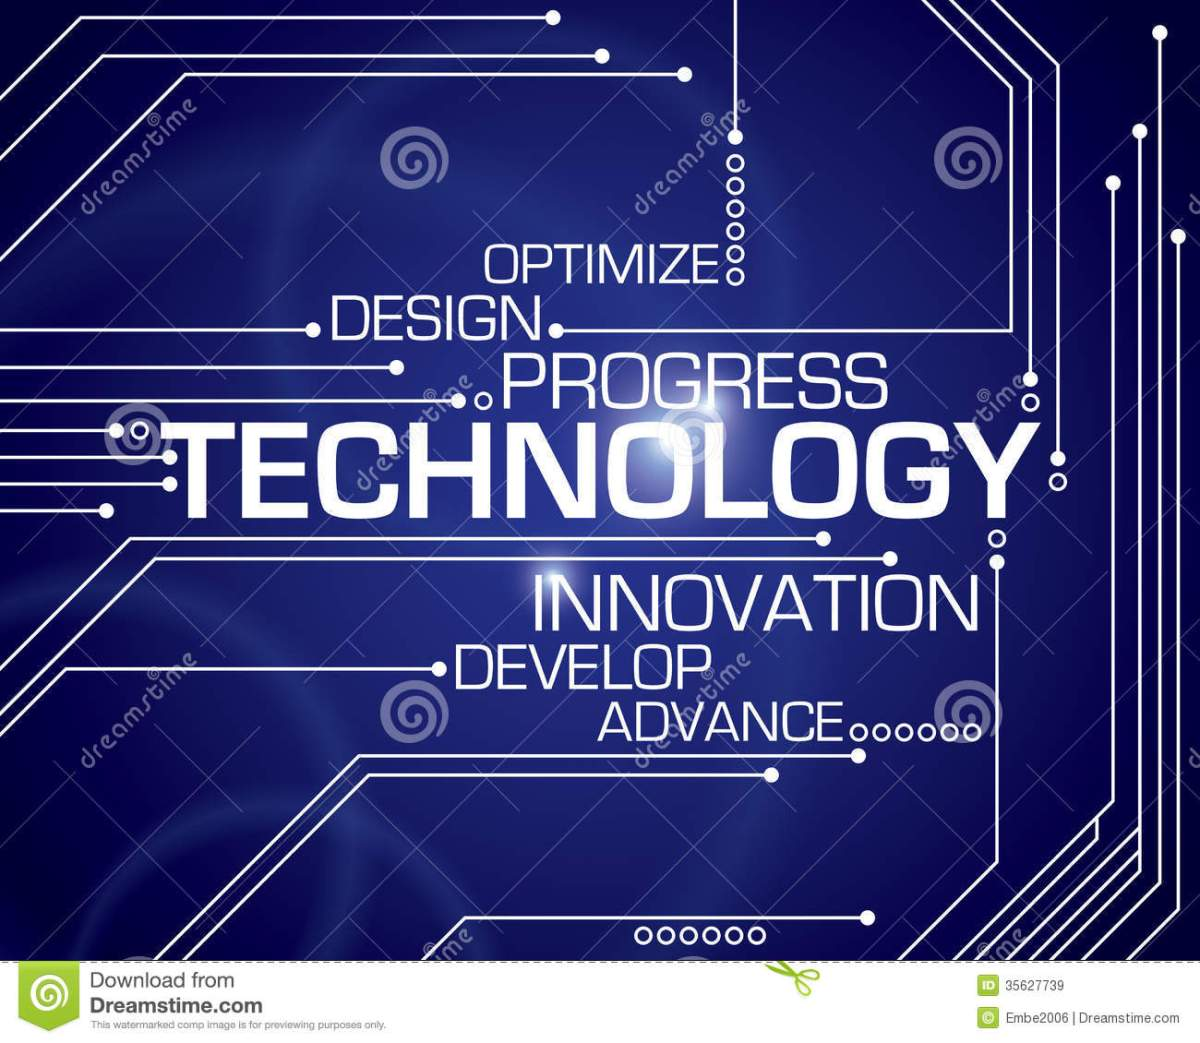 technology word background circuit lines board tech education century ugly bad 21st today royalty international learning preview